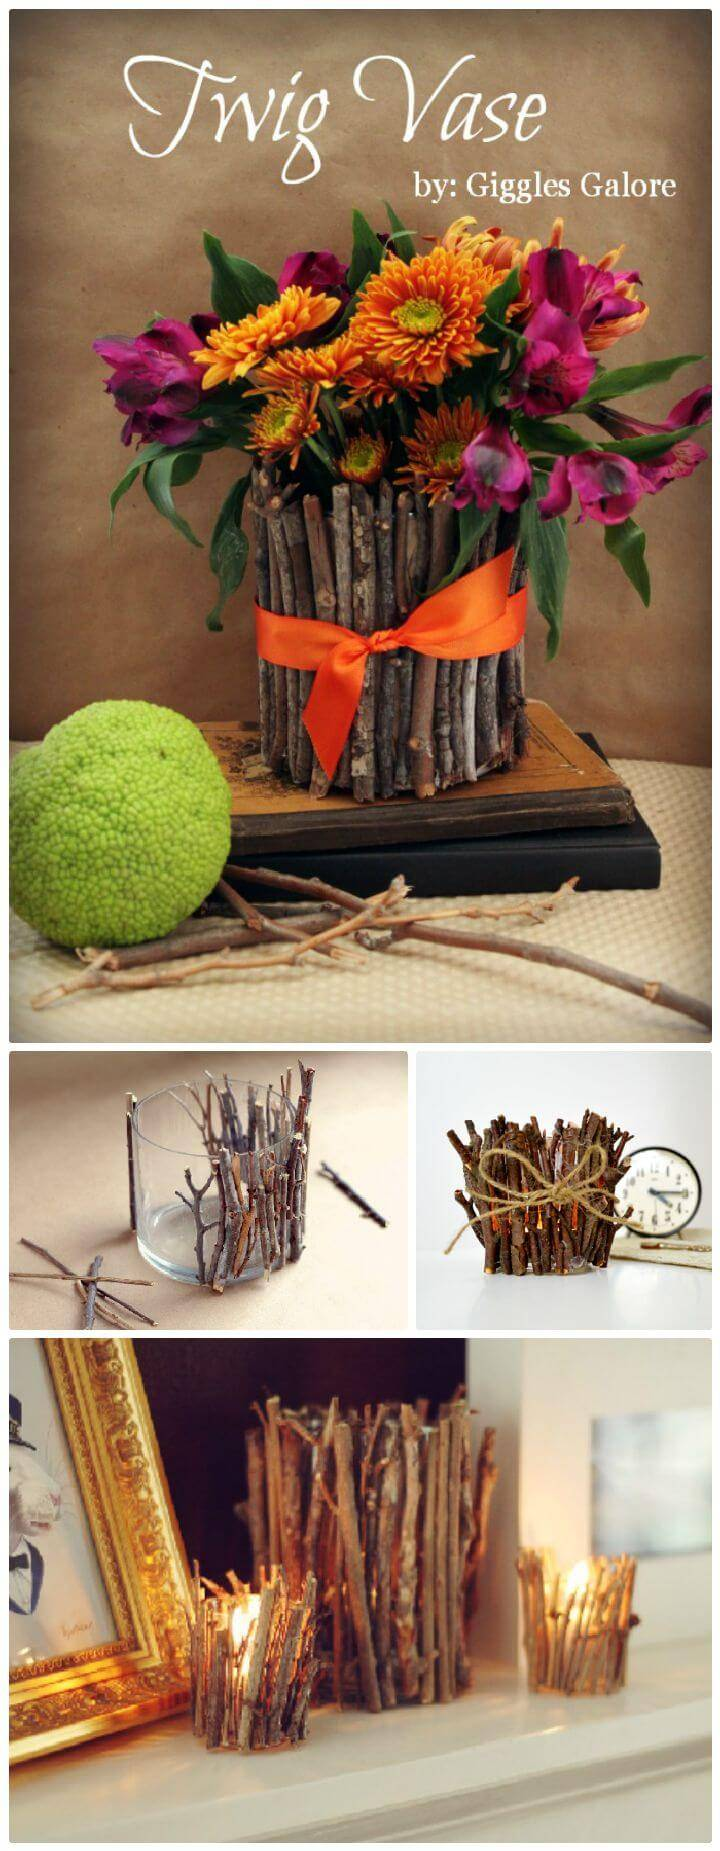 DIY Creatively Use Twigs In Home Décor